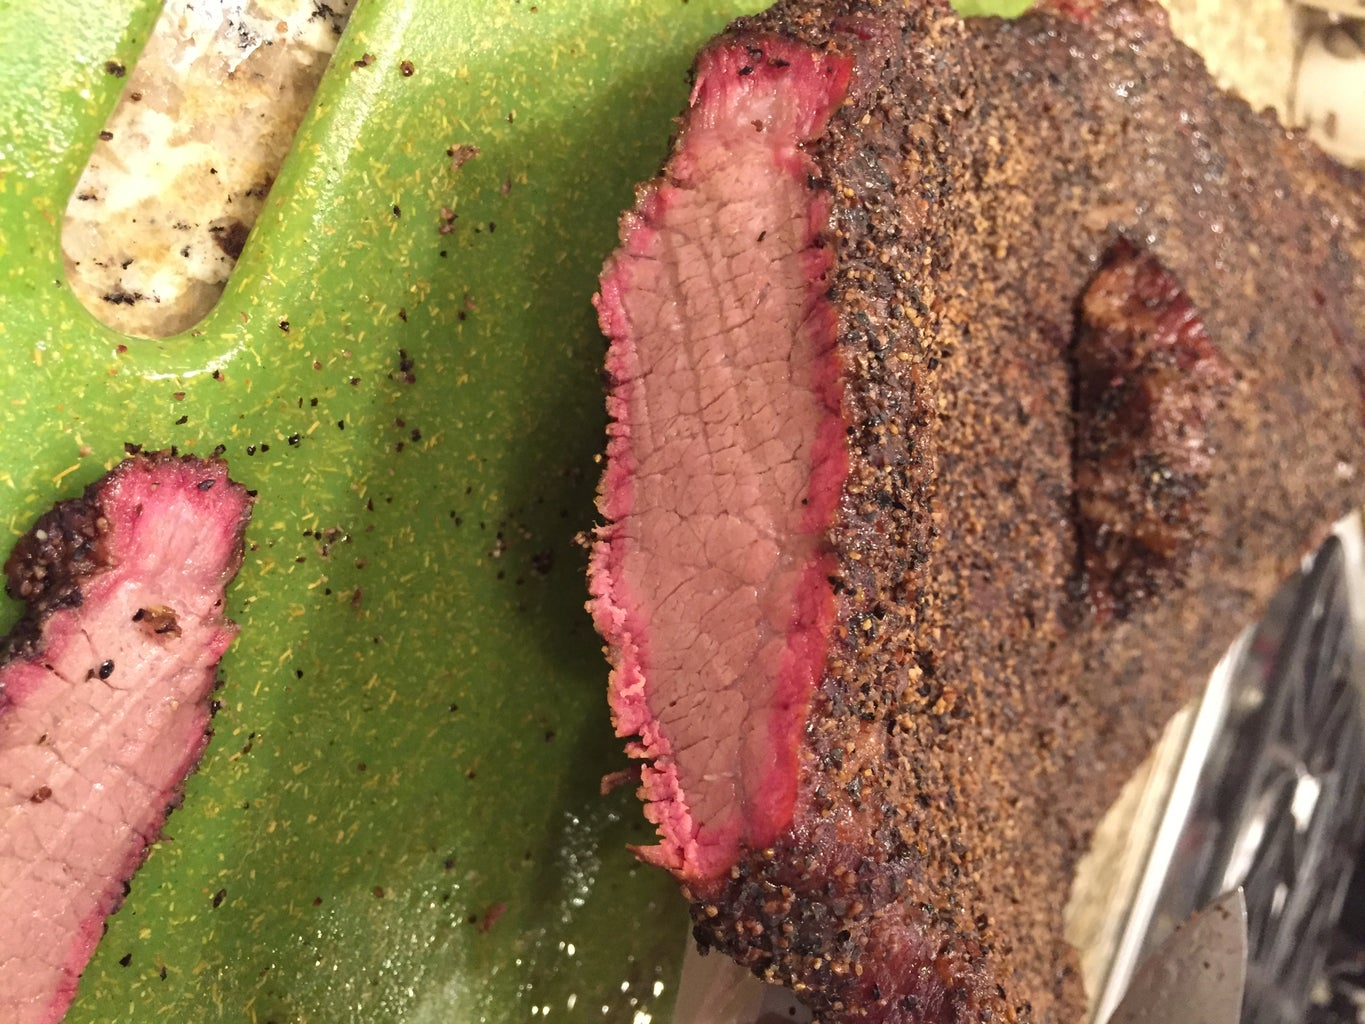 Cooking the Brisket